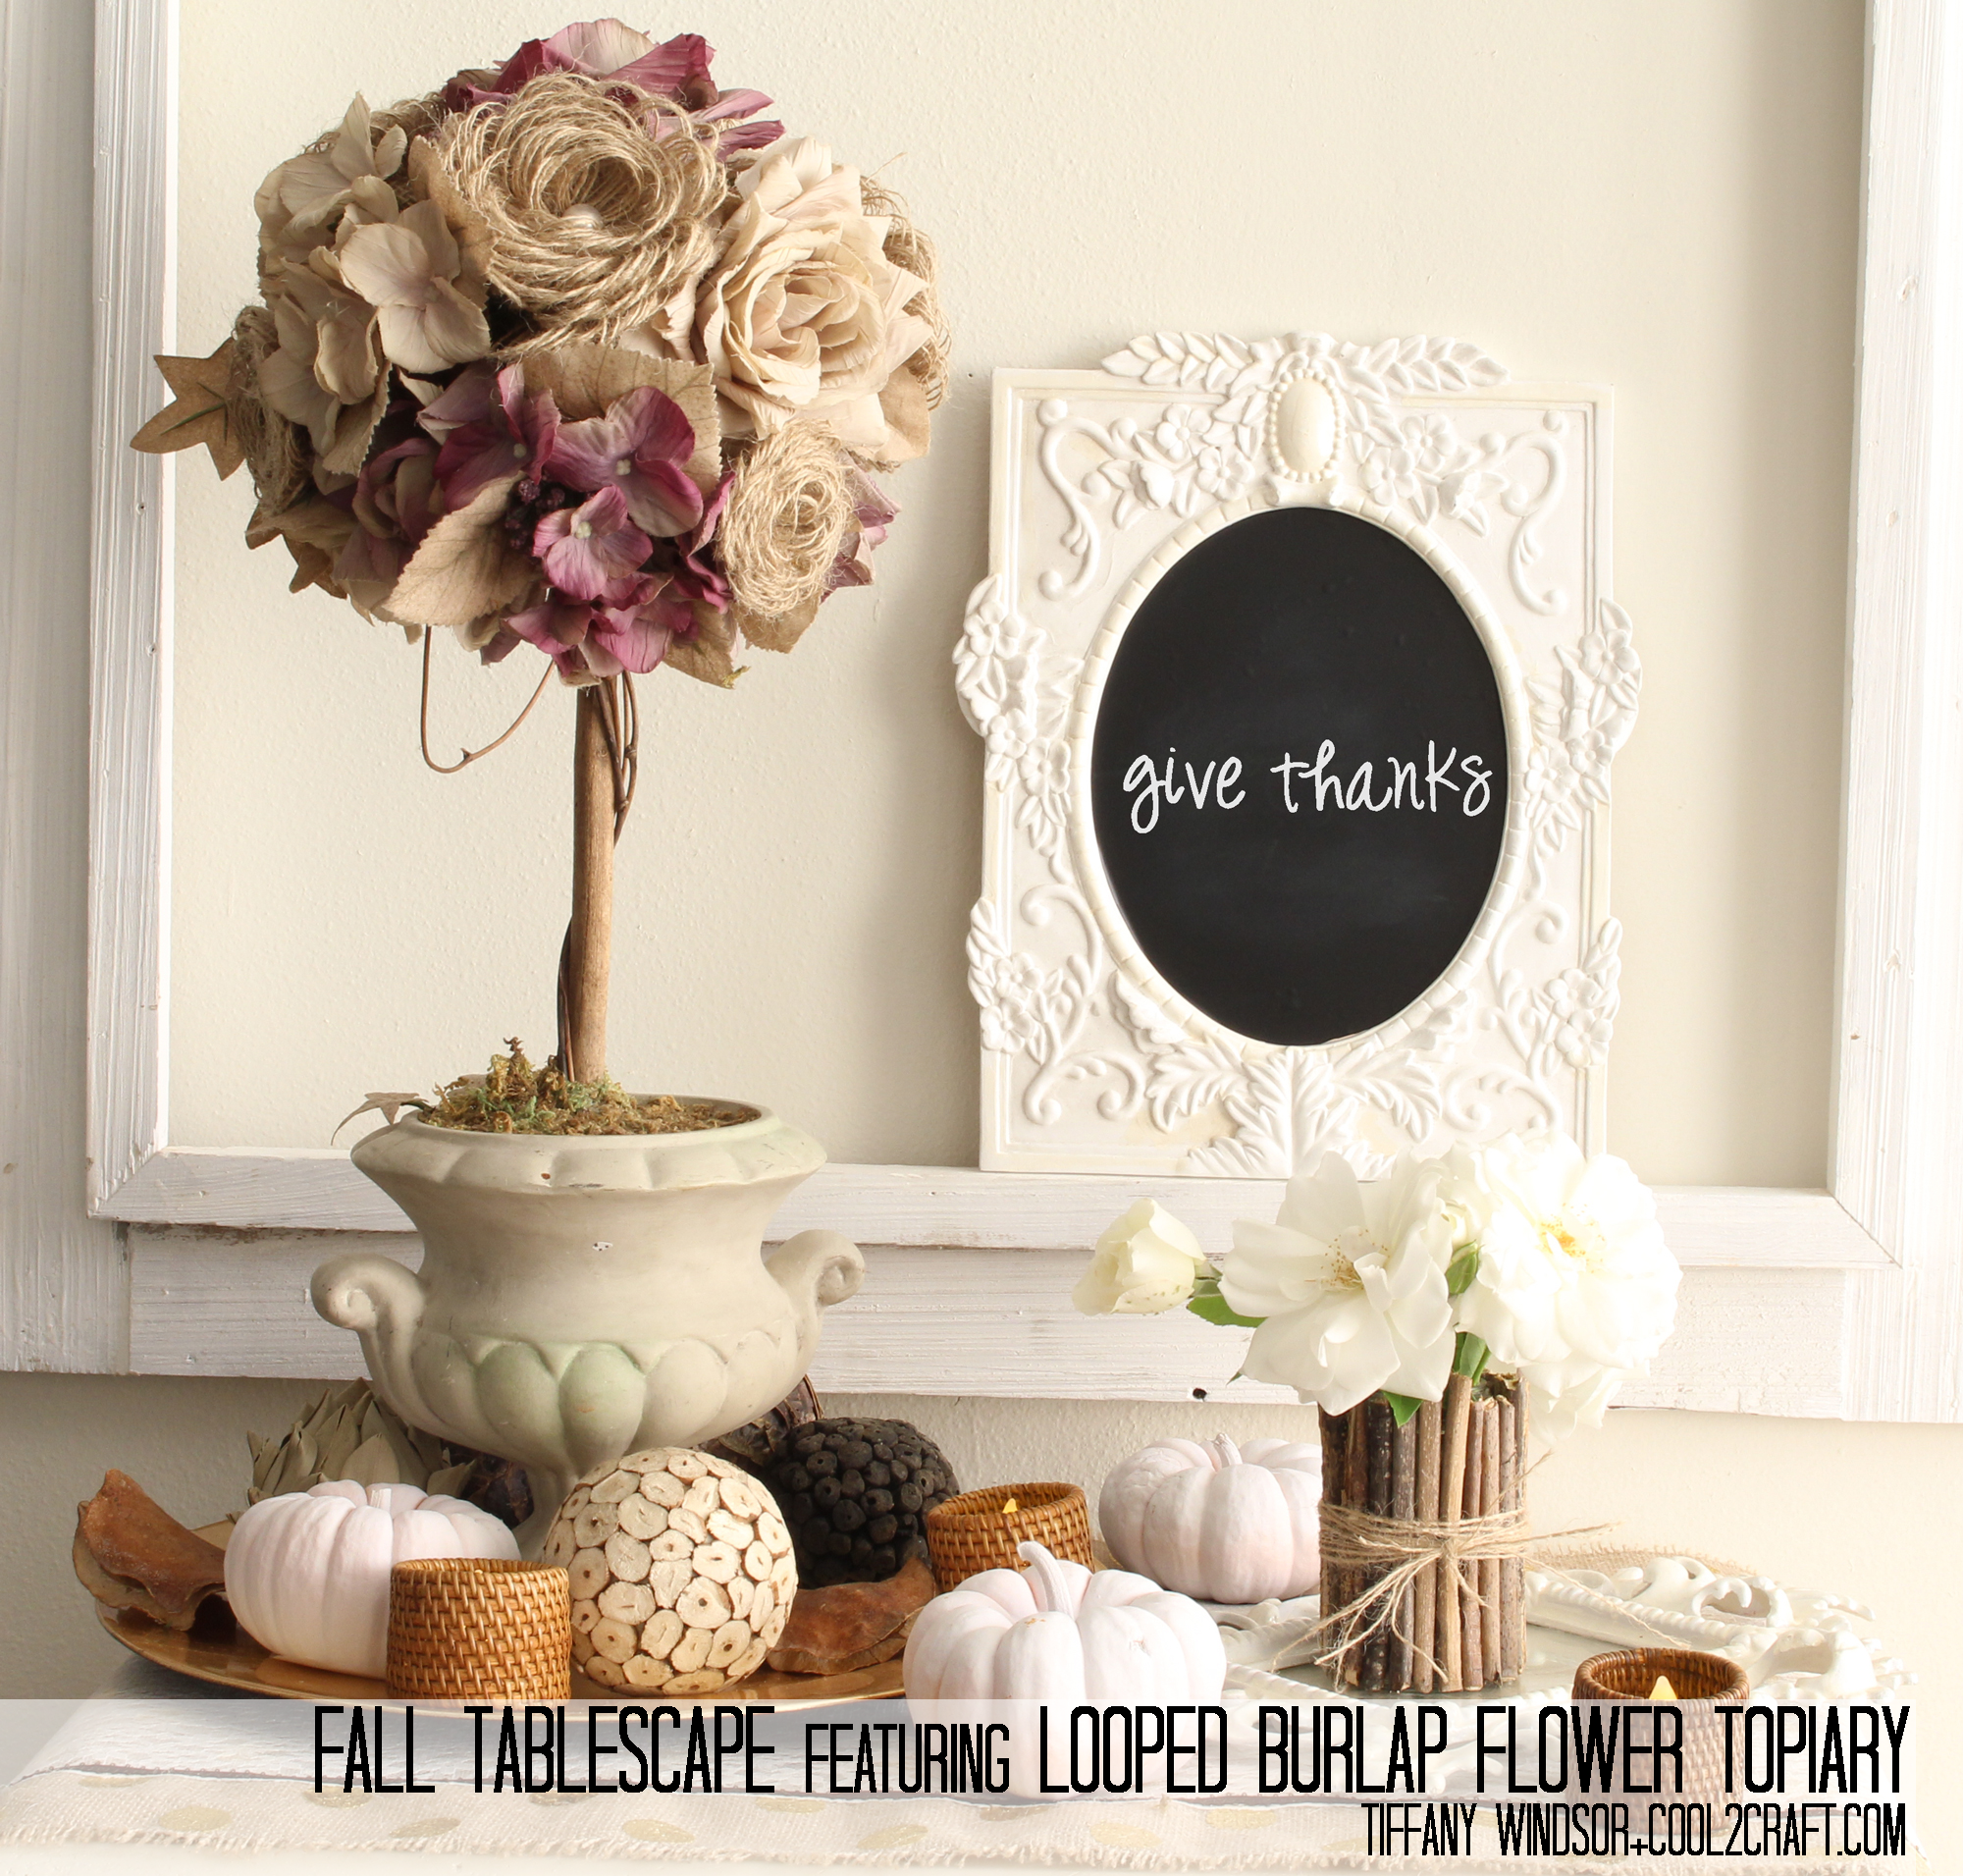 11-19-13-Looped-Burlap-Topiary-Tablescape.png (2000×1911)